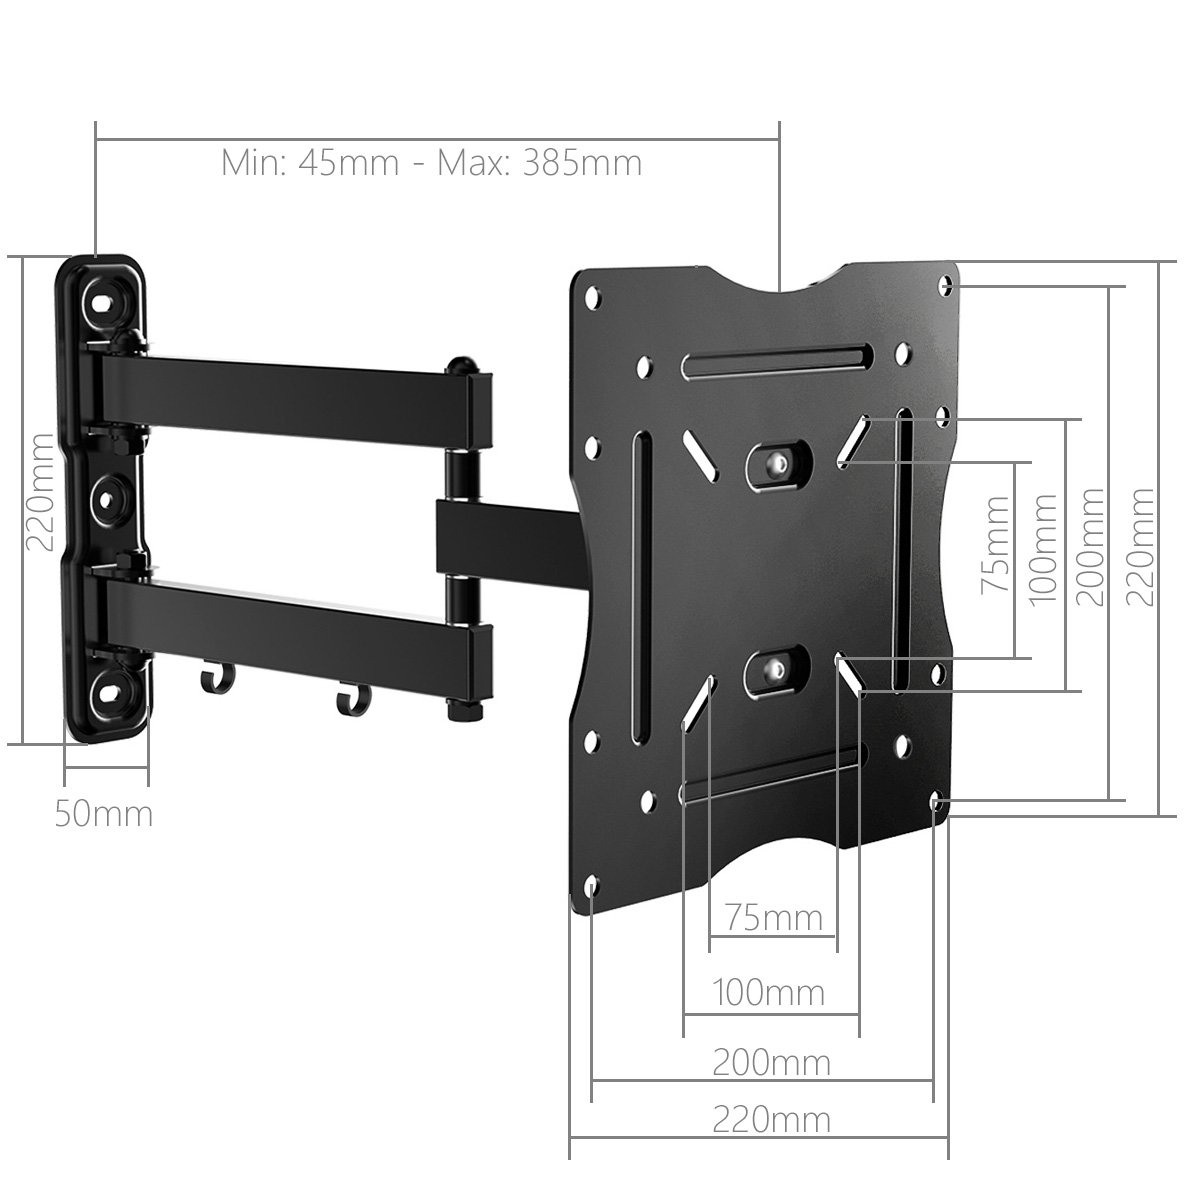 Stealth Mounts Cantilever TV Bracket for up to 42 inch TVs